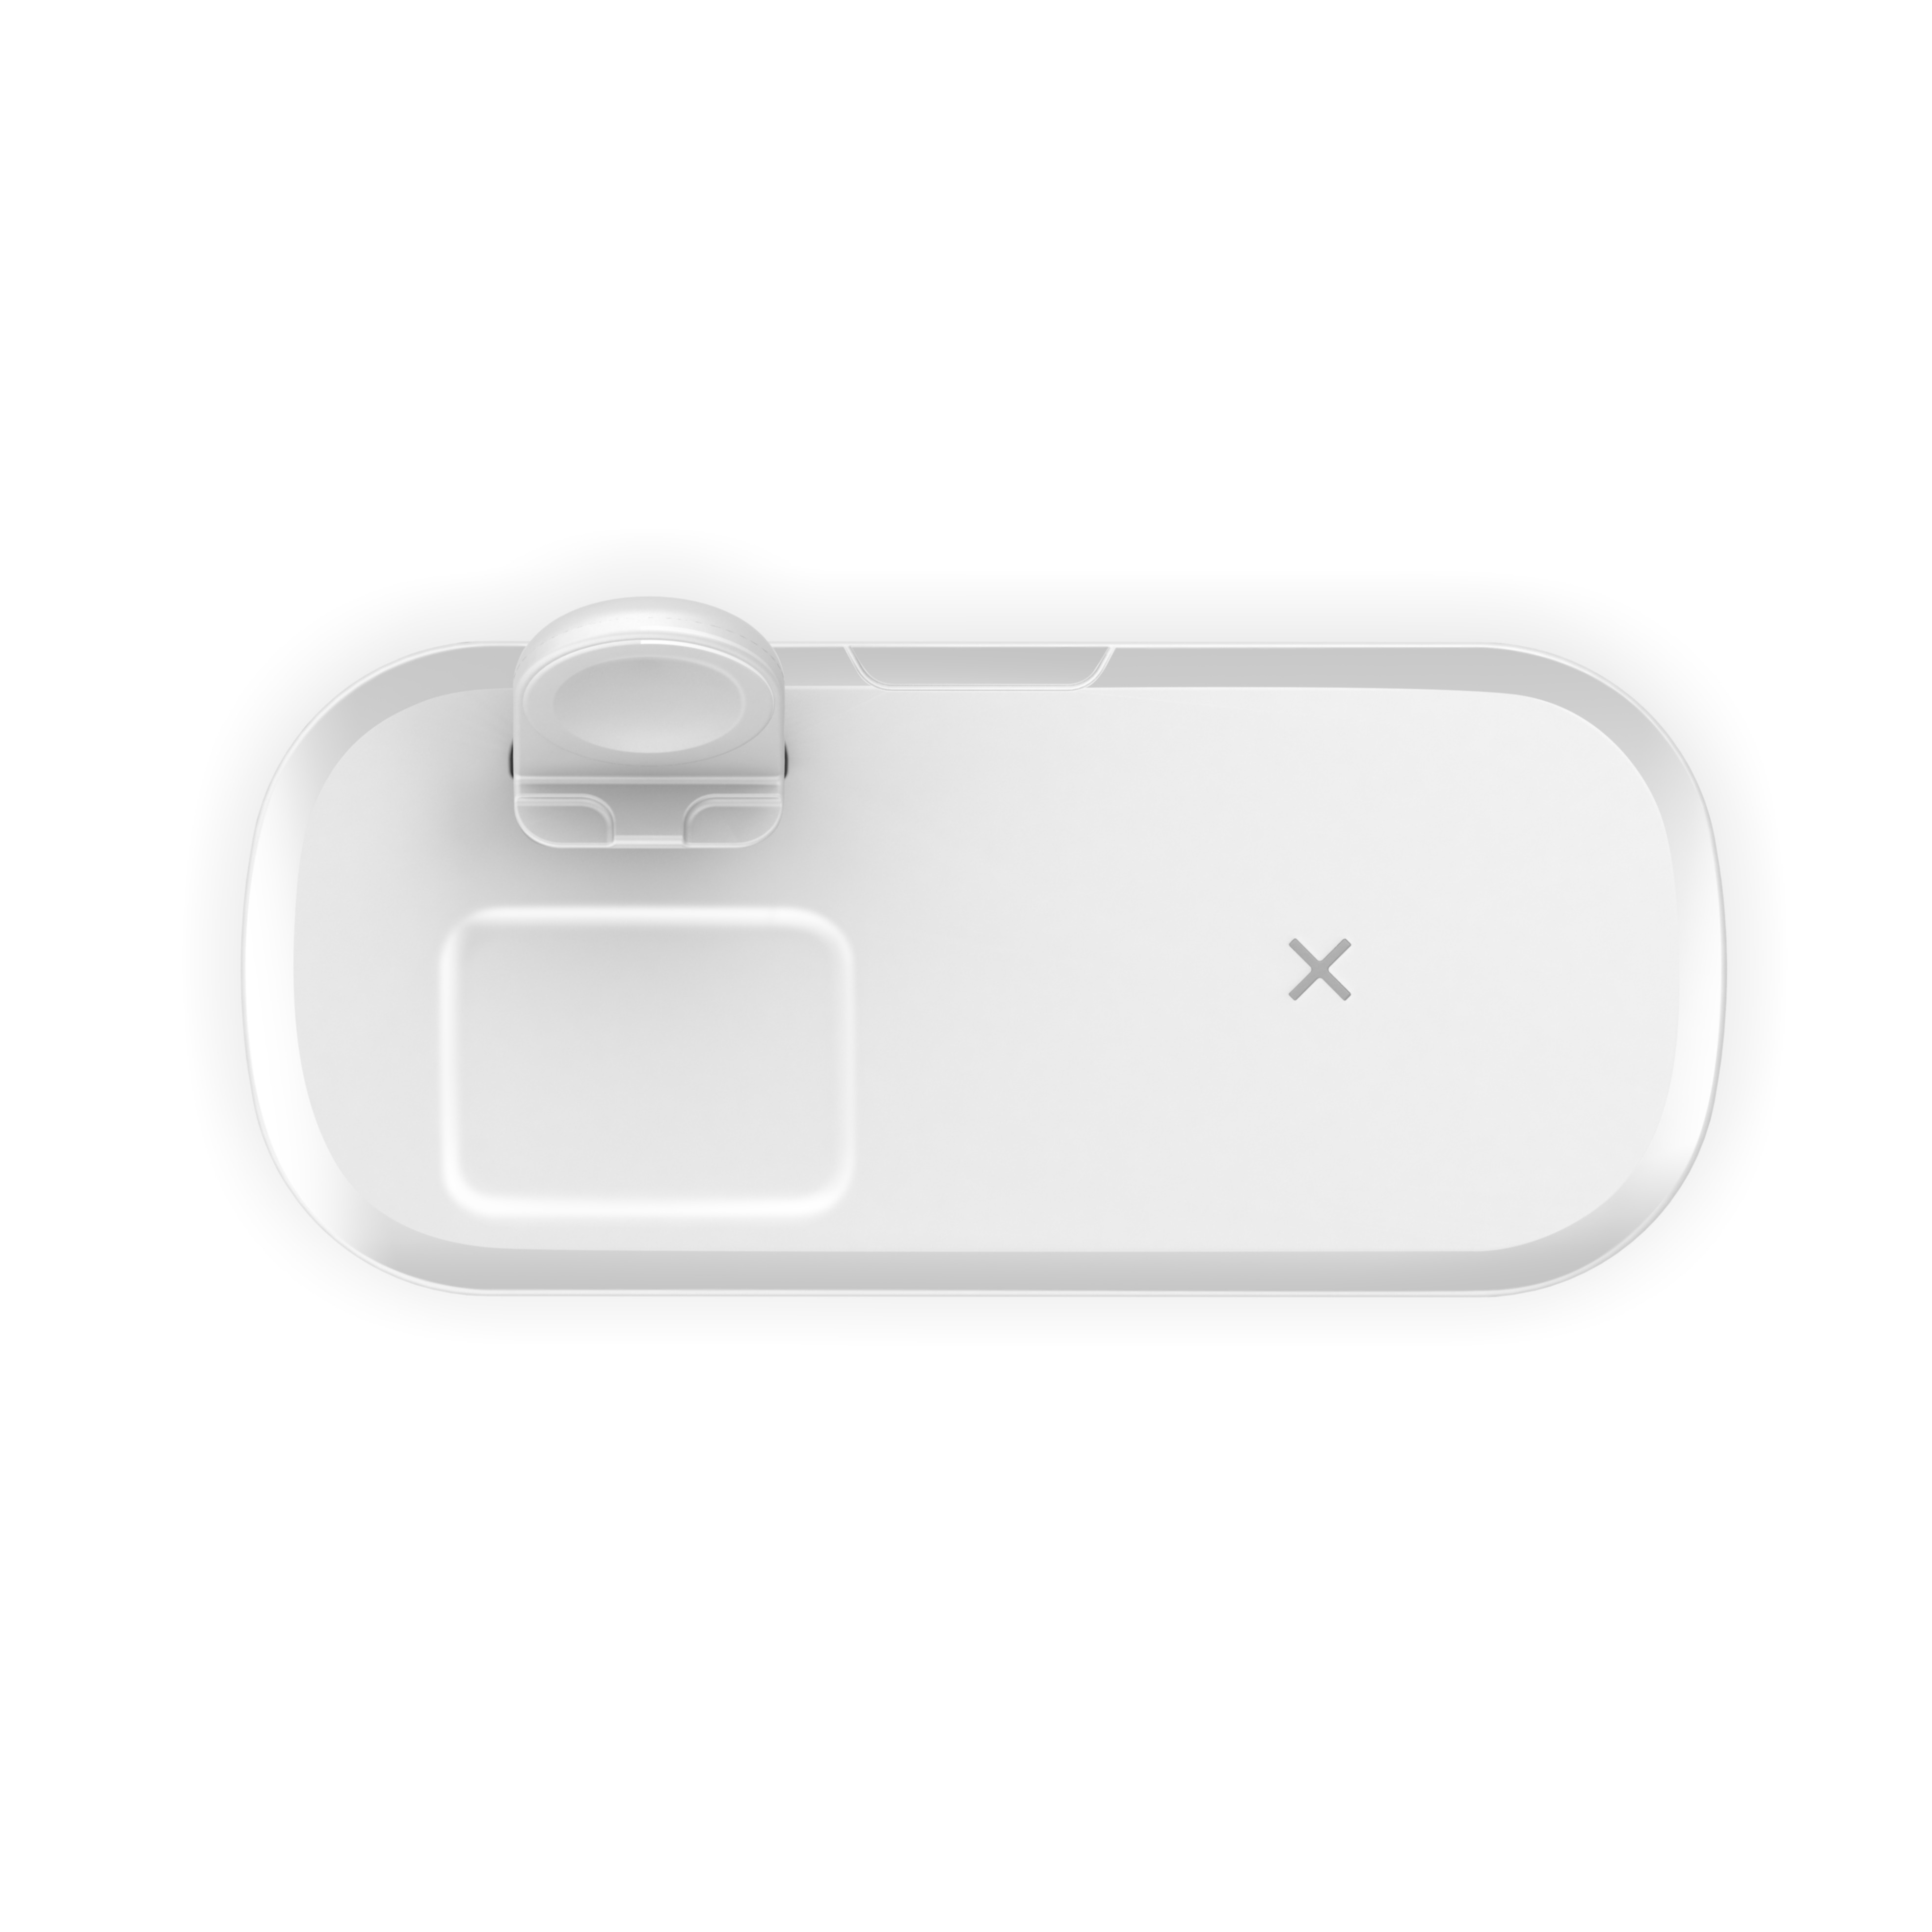 Wholesale fast wireless charging triple charger for phone/Airpods/iwatch charging at the same time